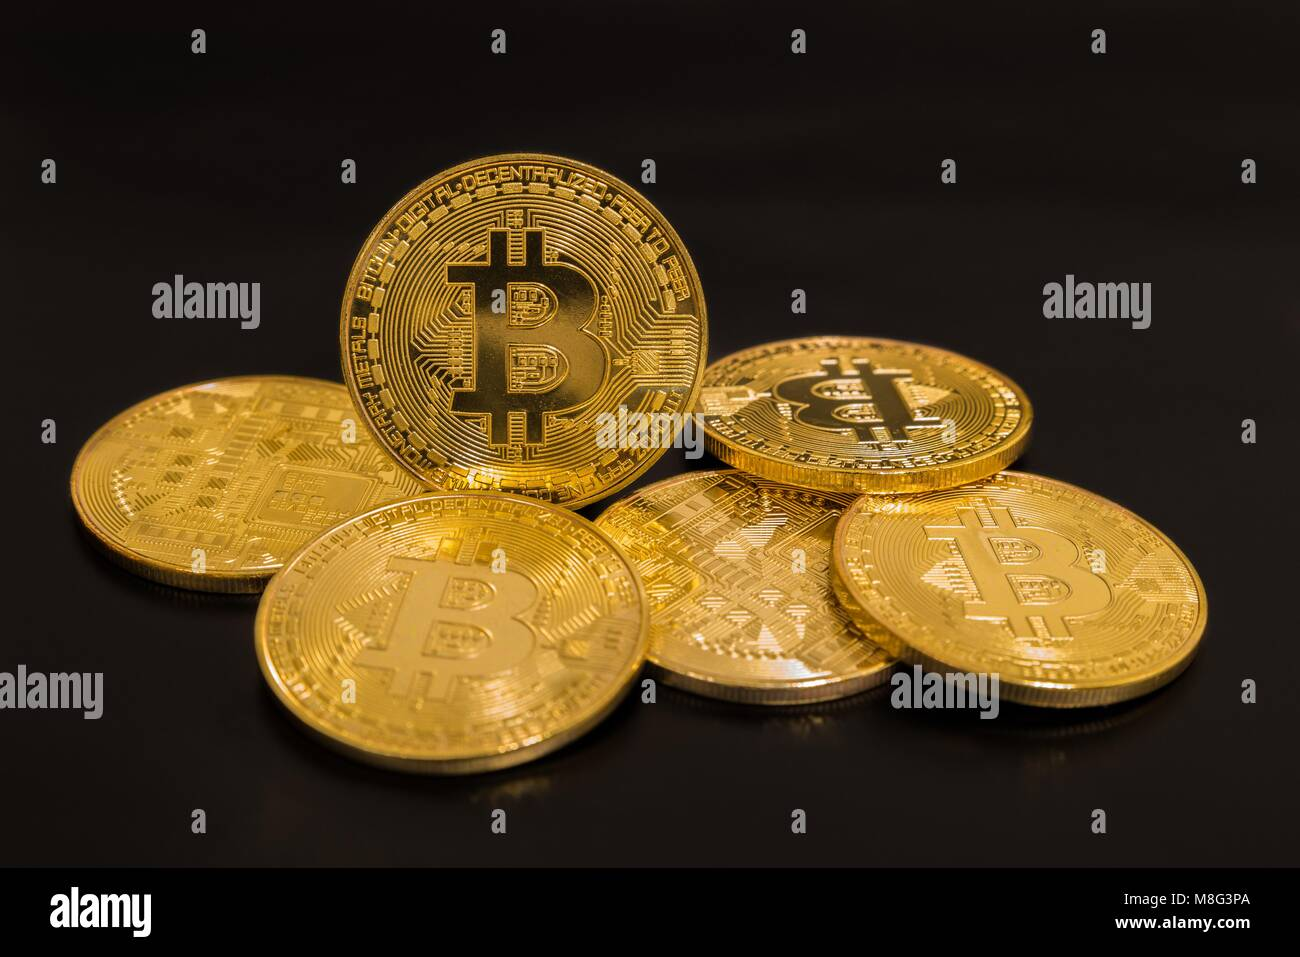 484342f3919 Gold coins bitcoin isolated on black background Stock Photo ...